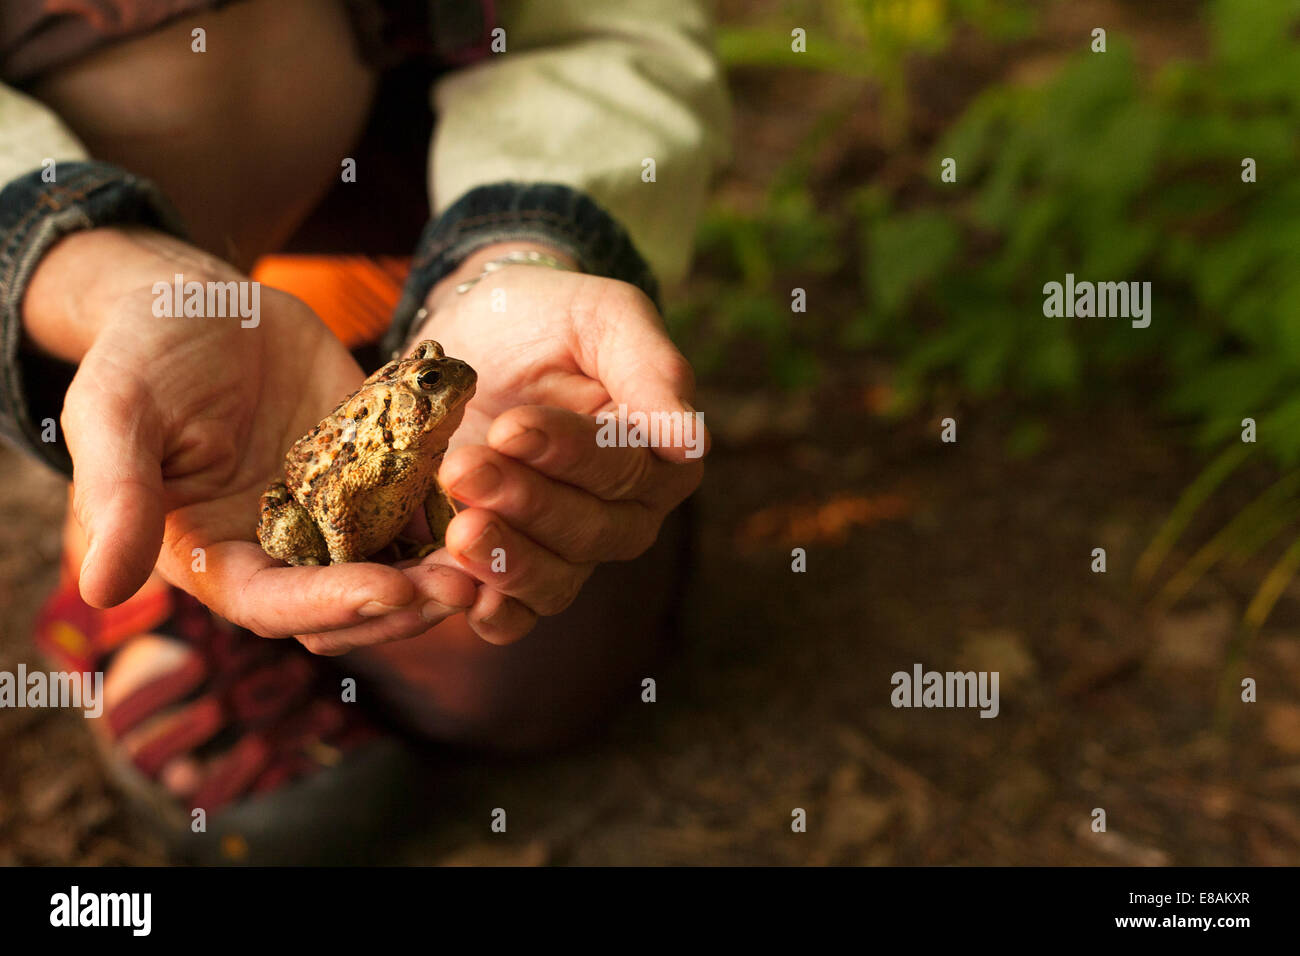 Close up of hands holding a toad Stock Photo